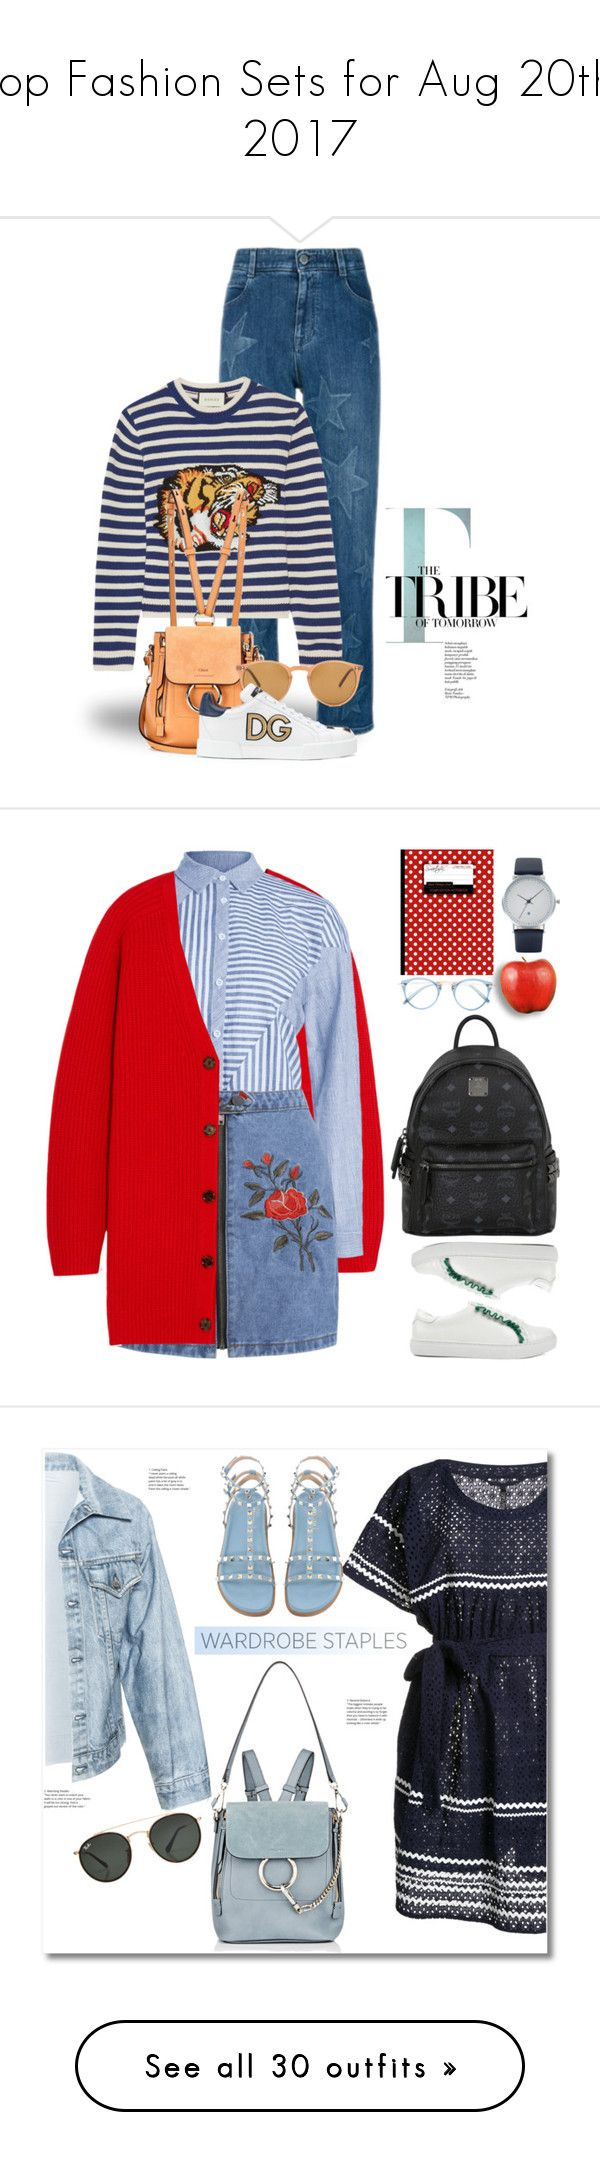 """""""Top Fashion Sets for Aug 20th, 2017"""" by polyvore ❤ liked on Polyvore featuring STELLA McCARTNEY, Gucci, Chloé, Oliver Peoples, Dolce&Gabbana, tfp, MCM, BackToSchool, outfit and WardrobeStaples"""